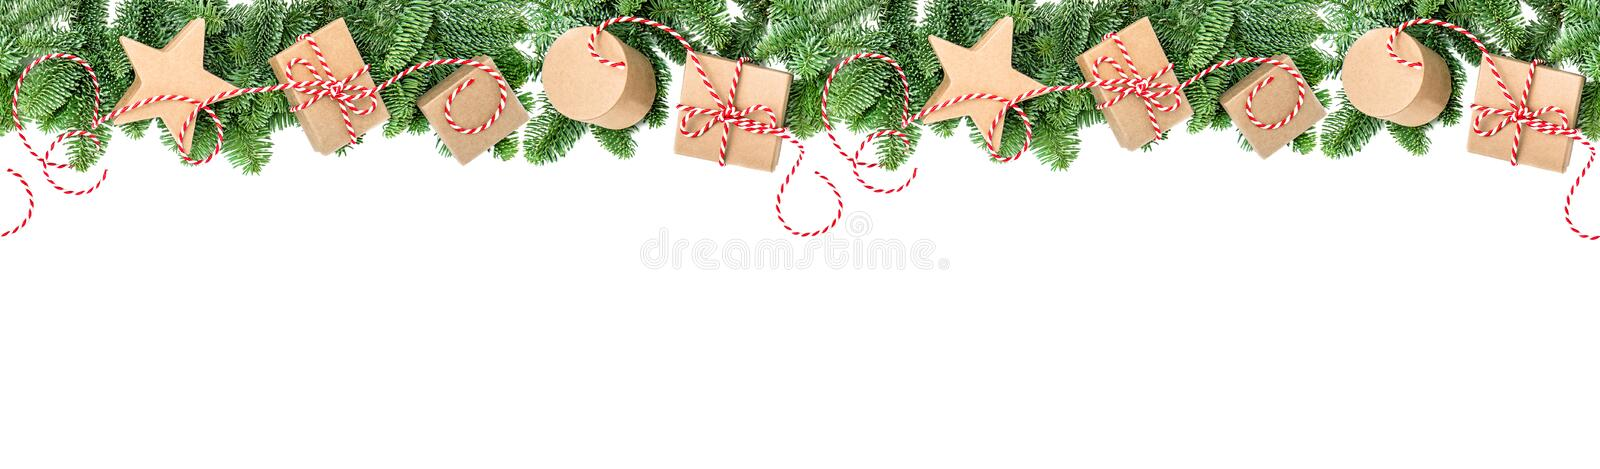 Christmas decoration gift boxes Pine branches border banner. Christmas decoration and gift boxes. Pine tree branches border on white background. Holidays banner royalty free stock photo